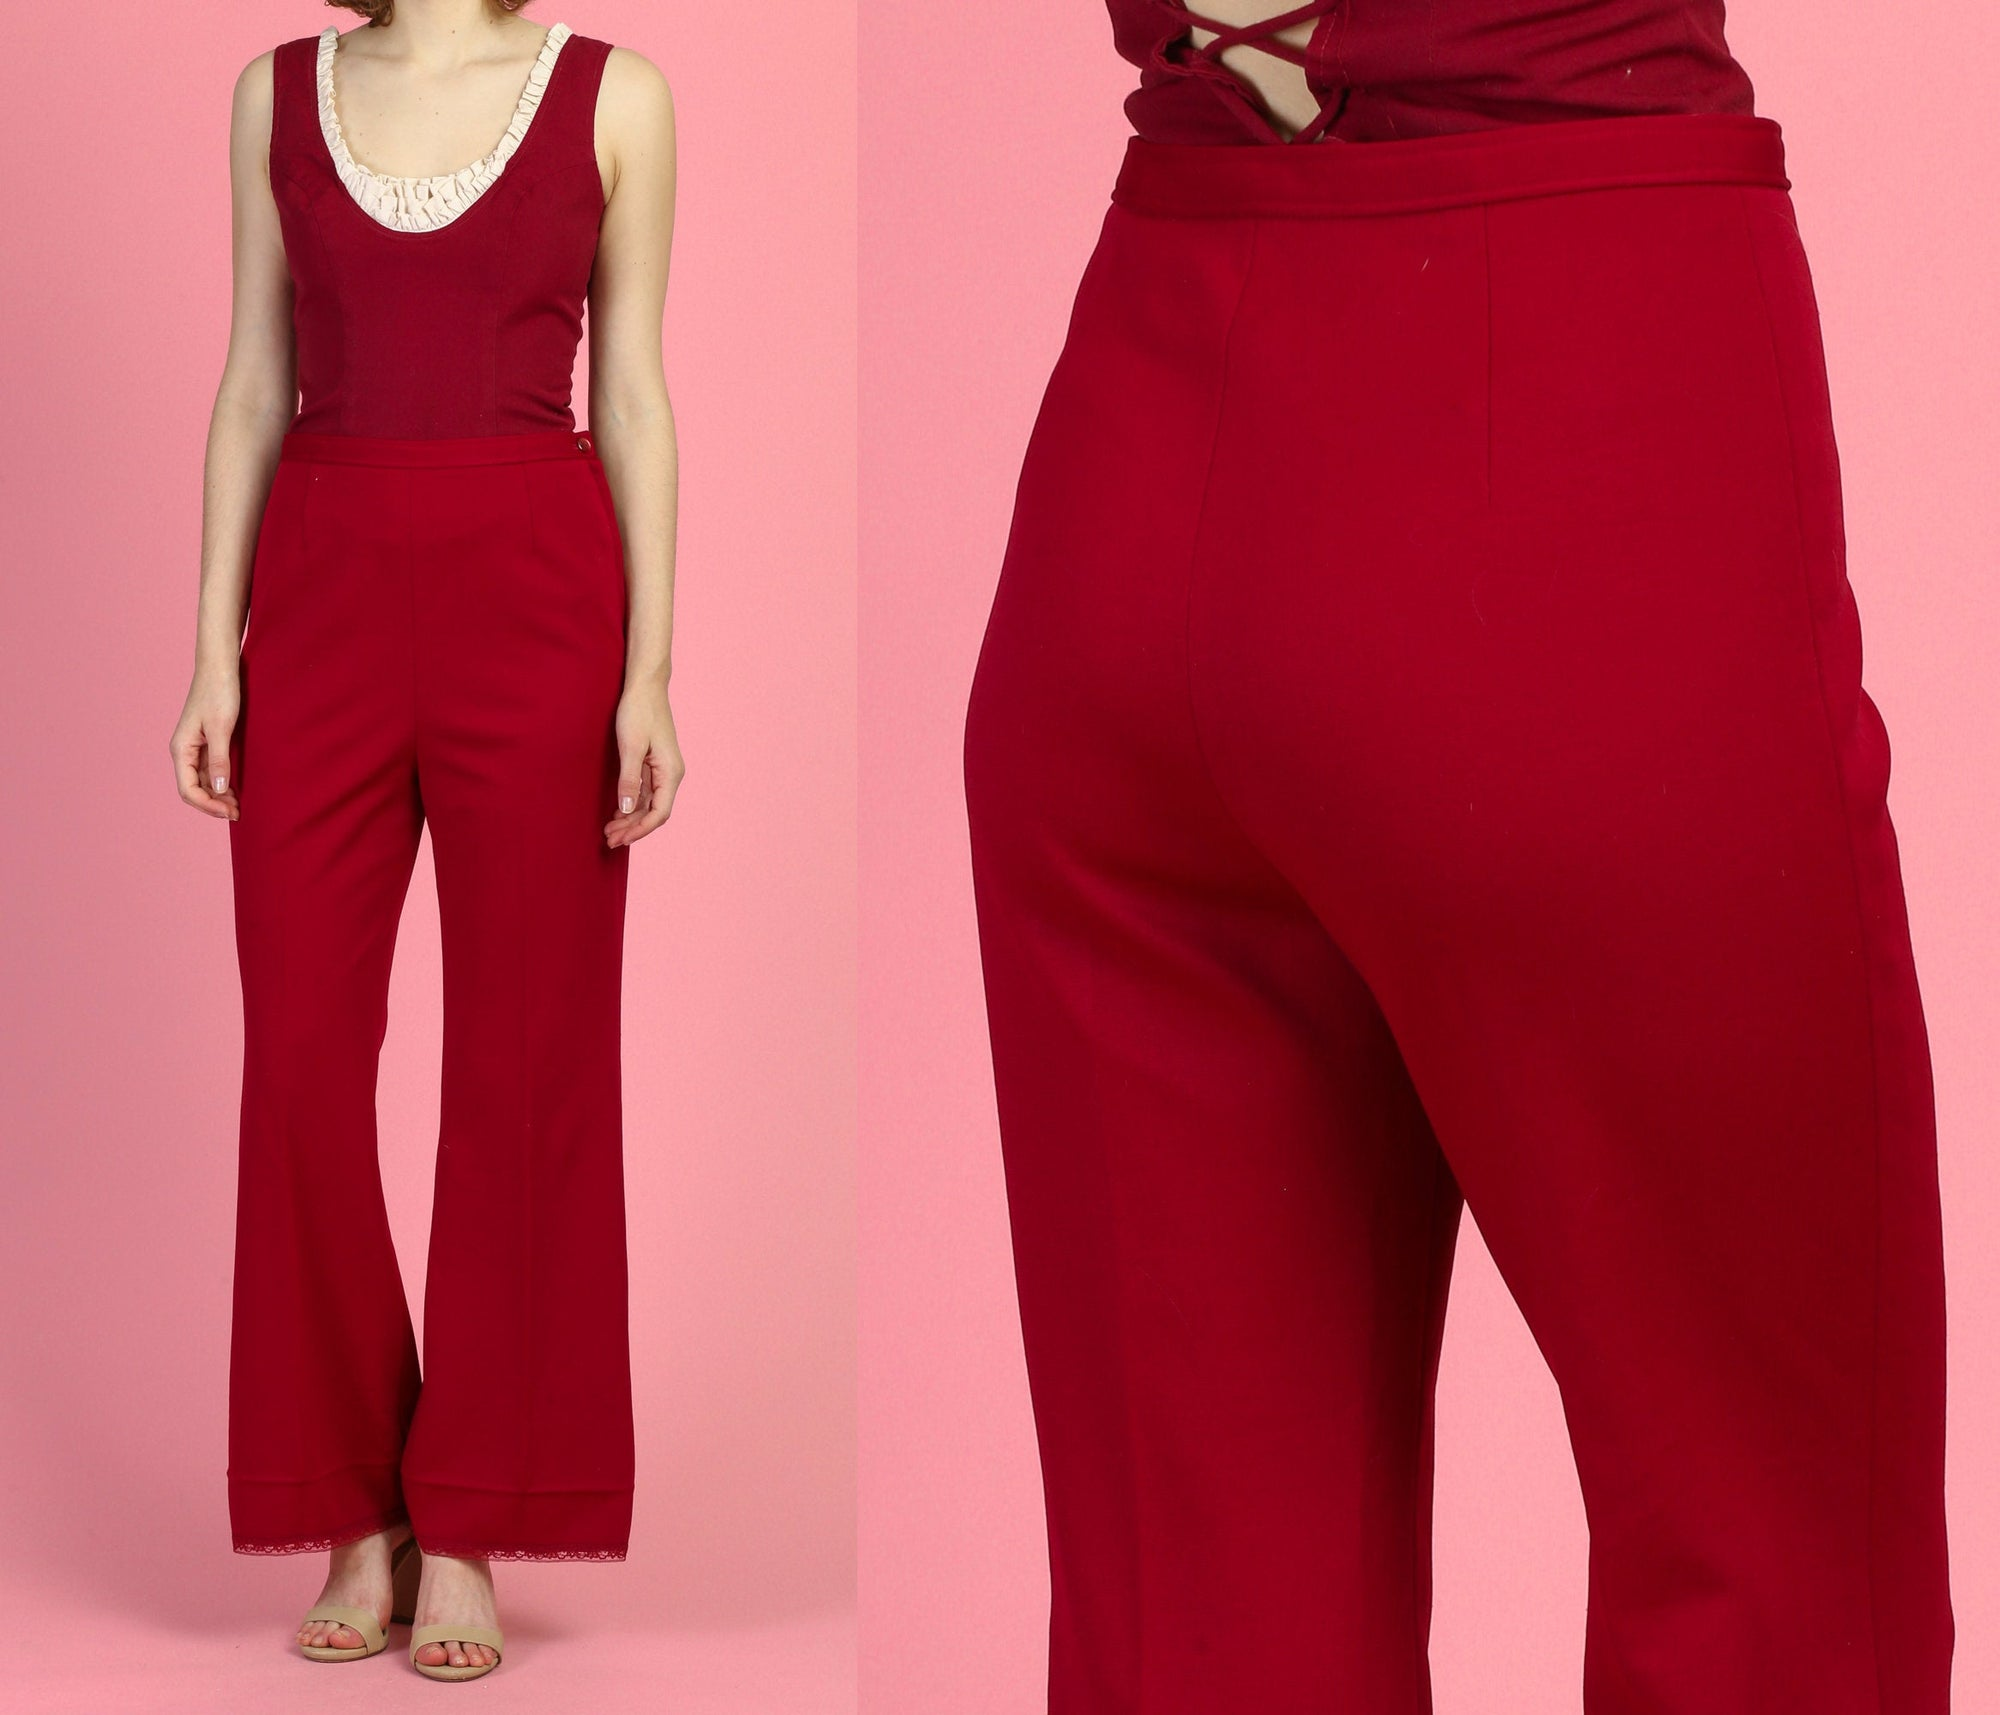 70s Flared Trousers - Medium